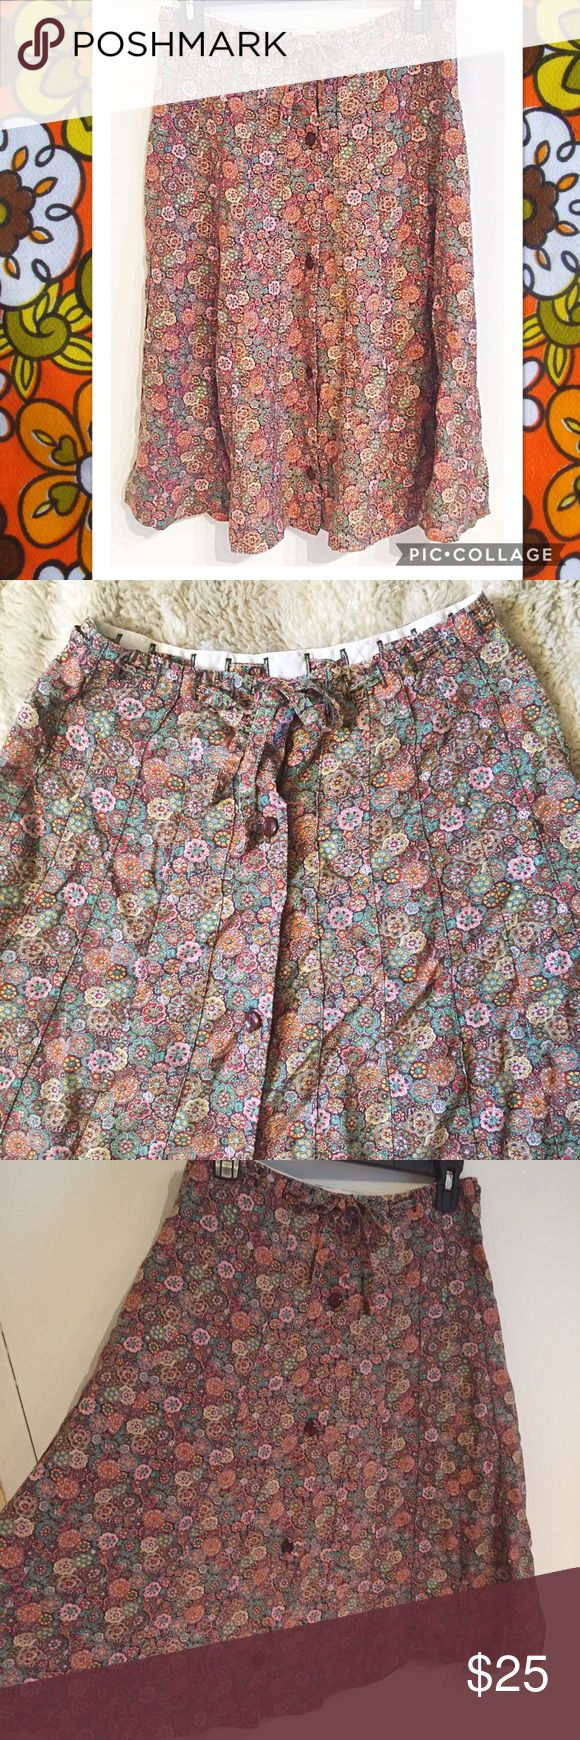 "Vintage 60s/70s Floral Button Up Skirt Vintage 60s/70s Floral Button Up skirt with drawstring waist. Looks like something Mila Kunis would have worn in that 70s show! No brand or size tags but measures 13.5"" flat at waist, and 25"" long.  #vintage #mod #floral #60s #70s #that70sshow #skirt #buttonup #drawstring #hippie #flowerchild #punkydoodle  No modeling Smoke free home I do discount bundles Vintage Skirts"